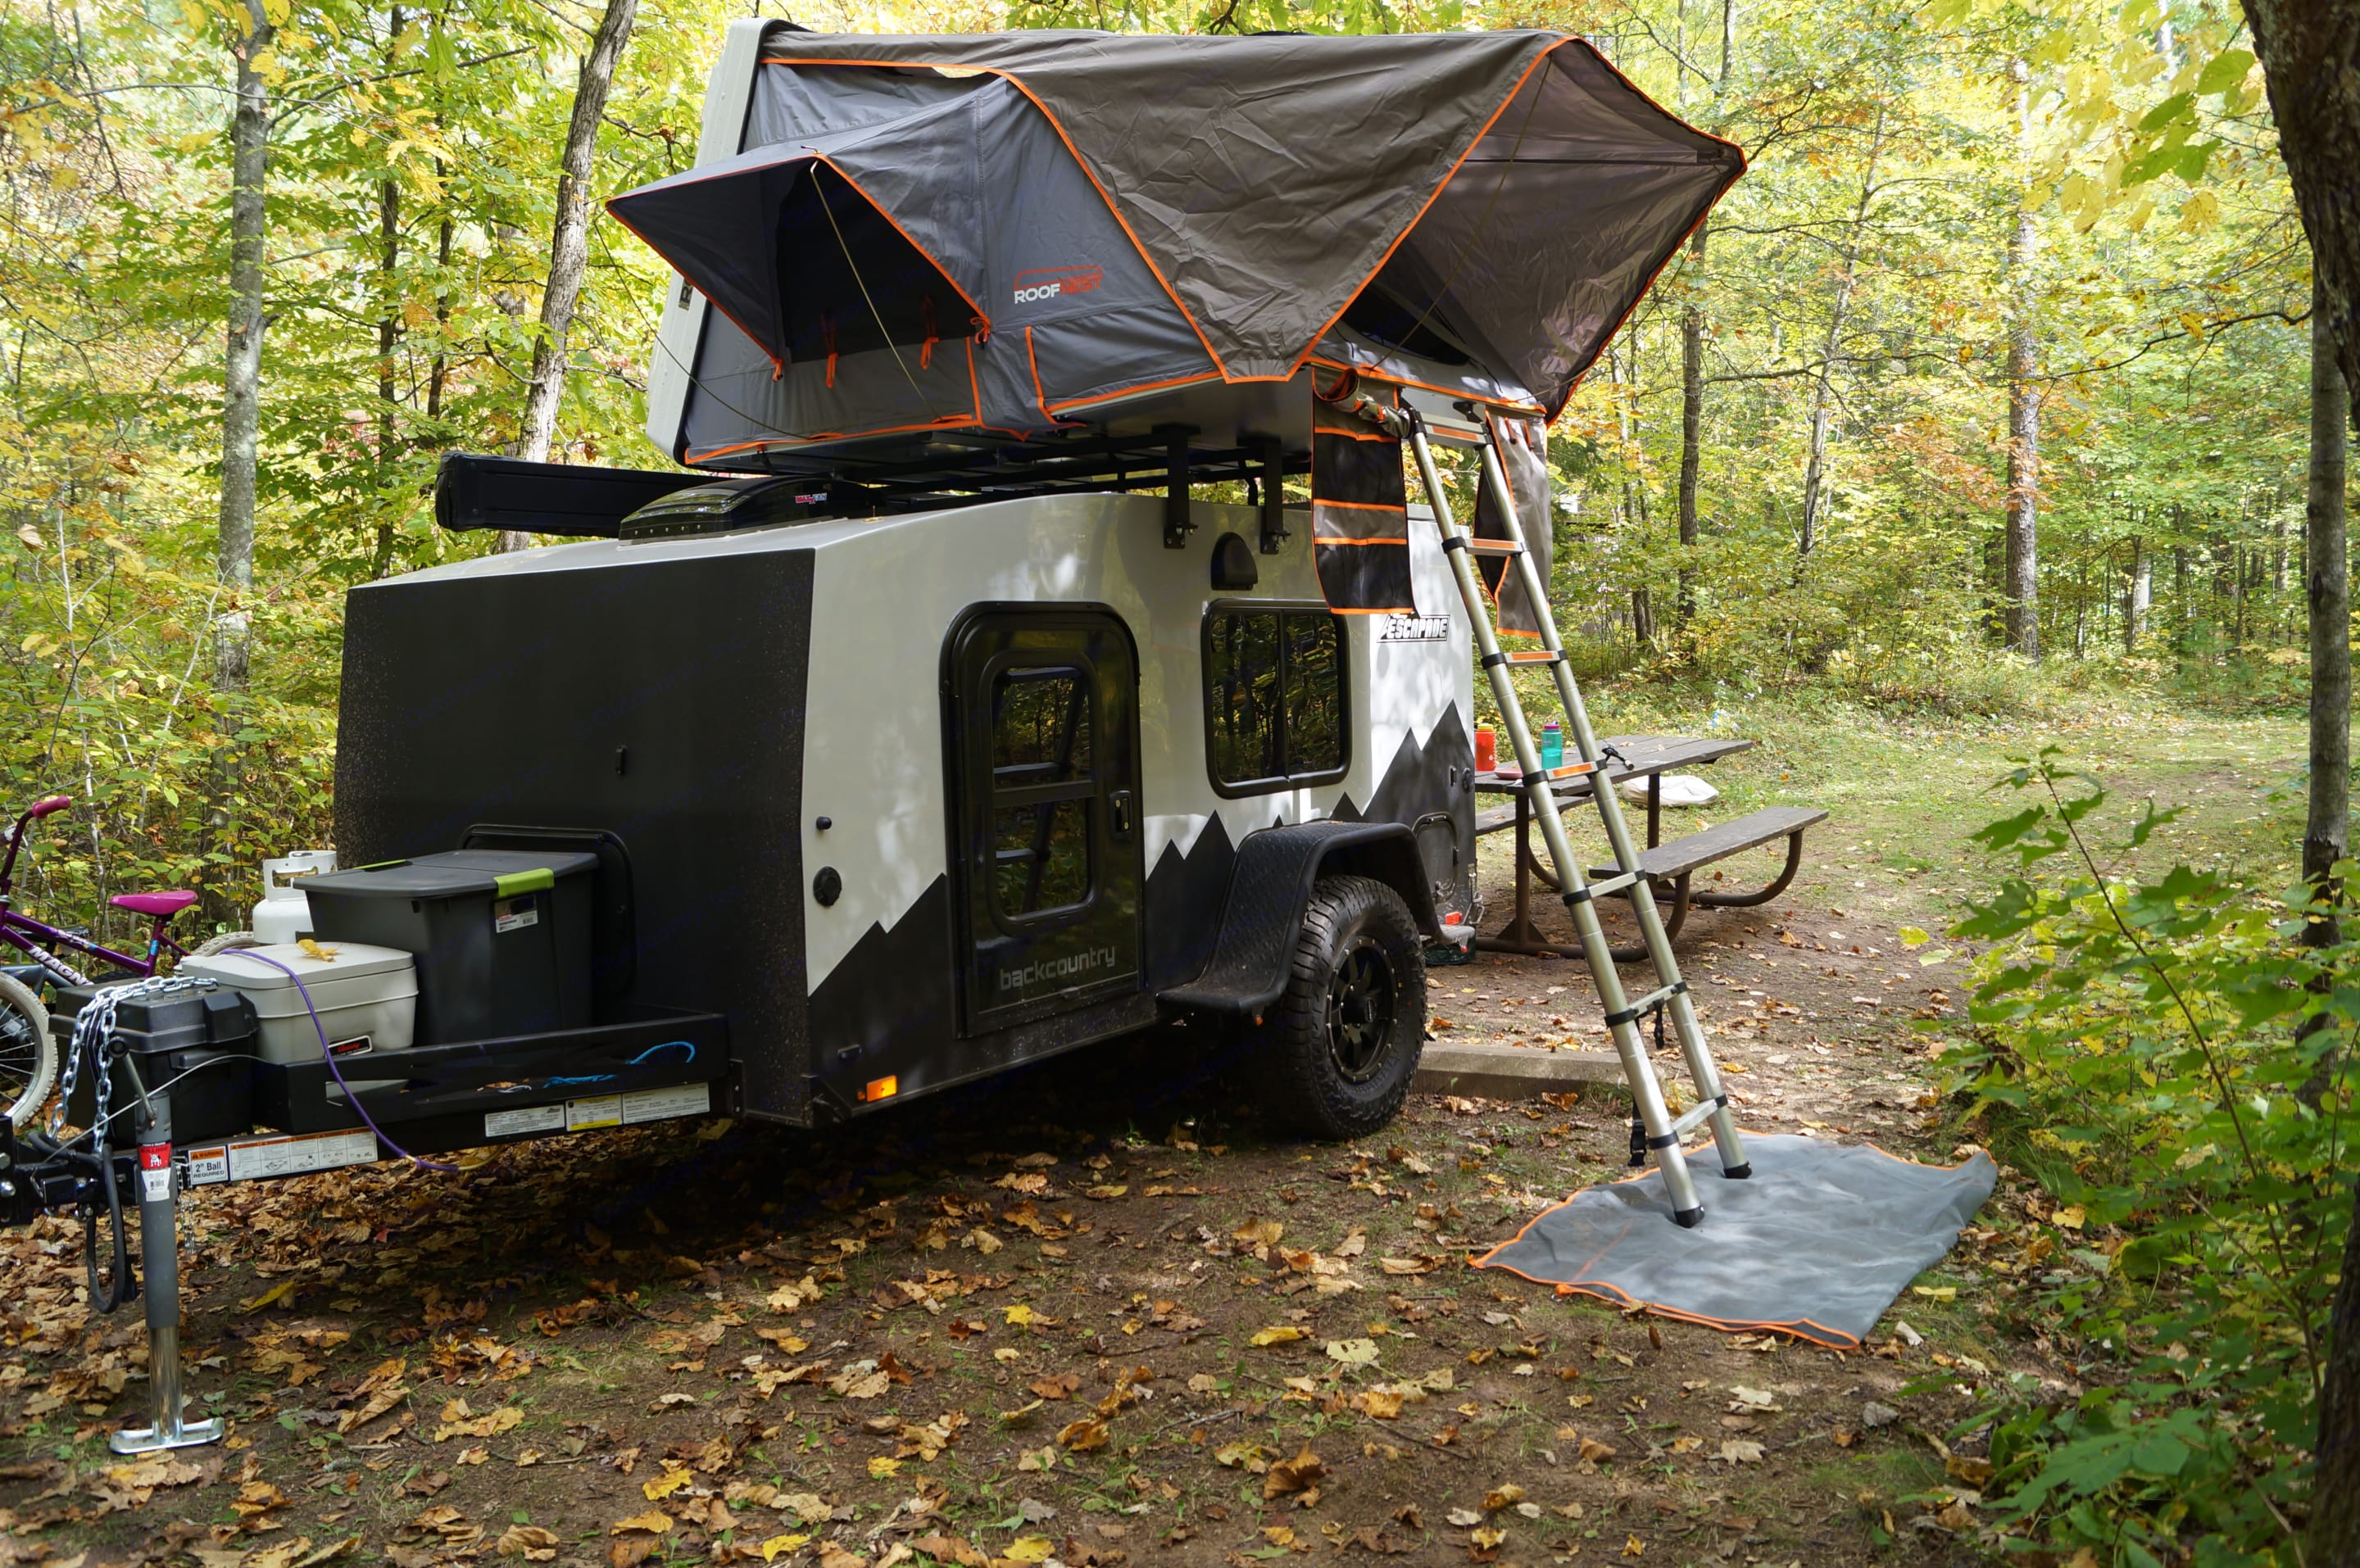 Camper pictured with the Condor open.  See the ample tongue storage and heavy duty fenders.. Custom Camper 2020